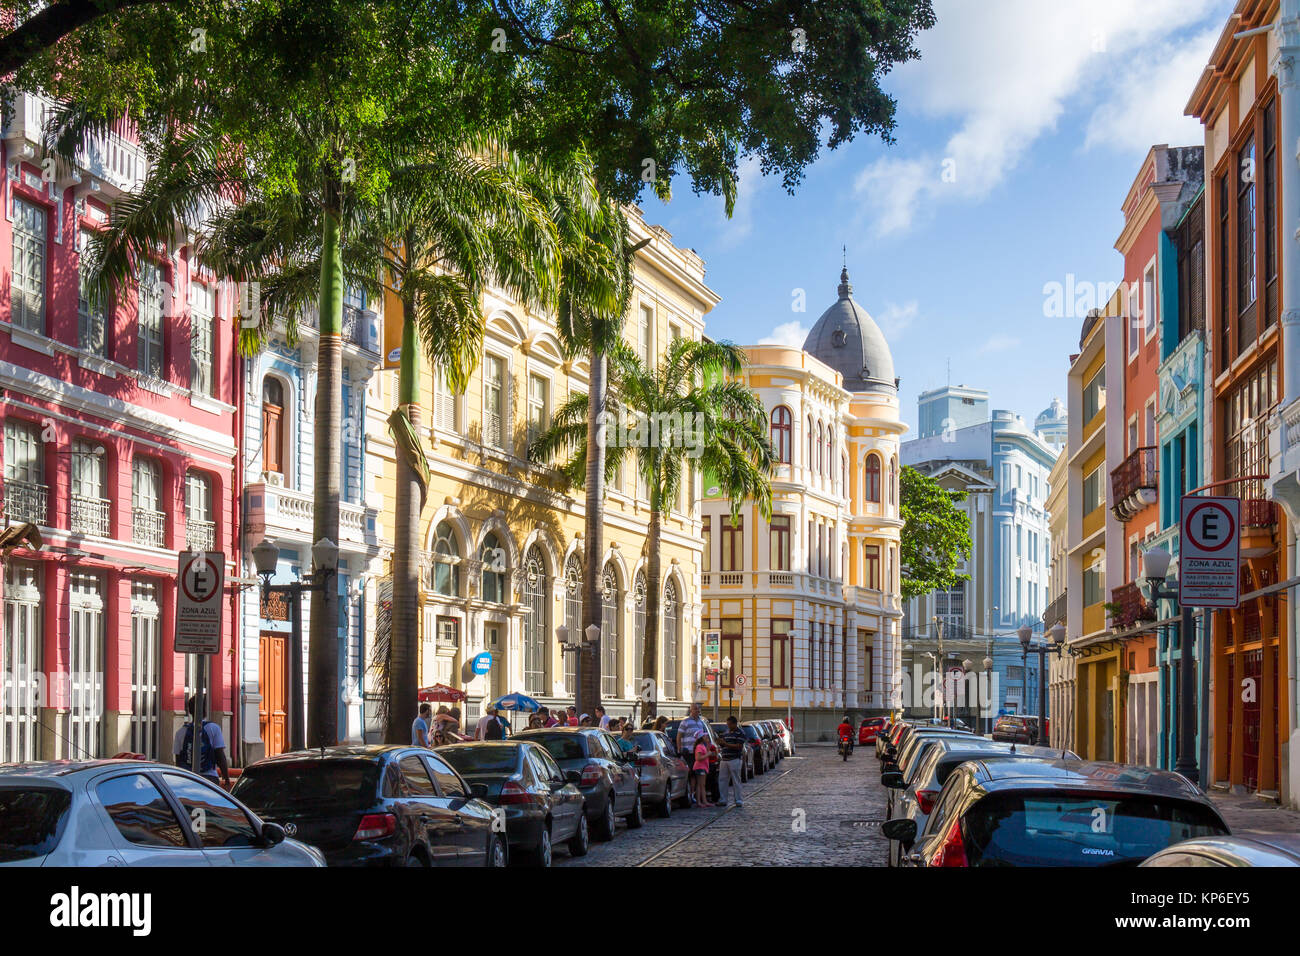 Colorful houses in the historical centre | Recife | Brazil - Stock Image